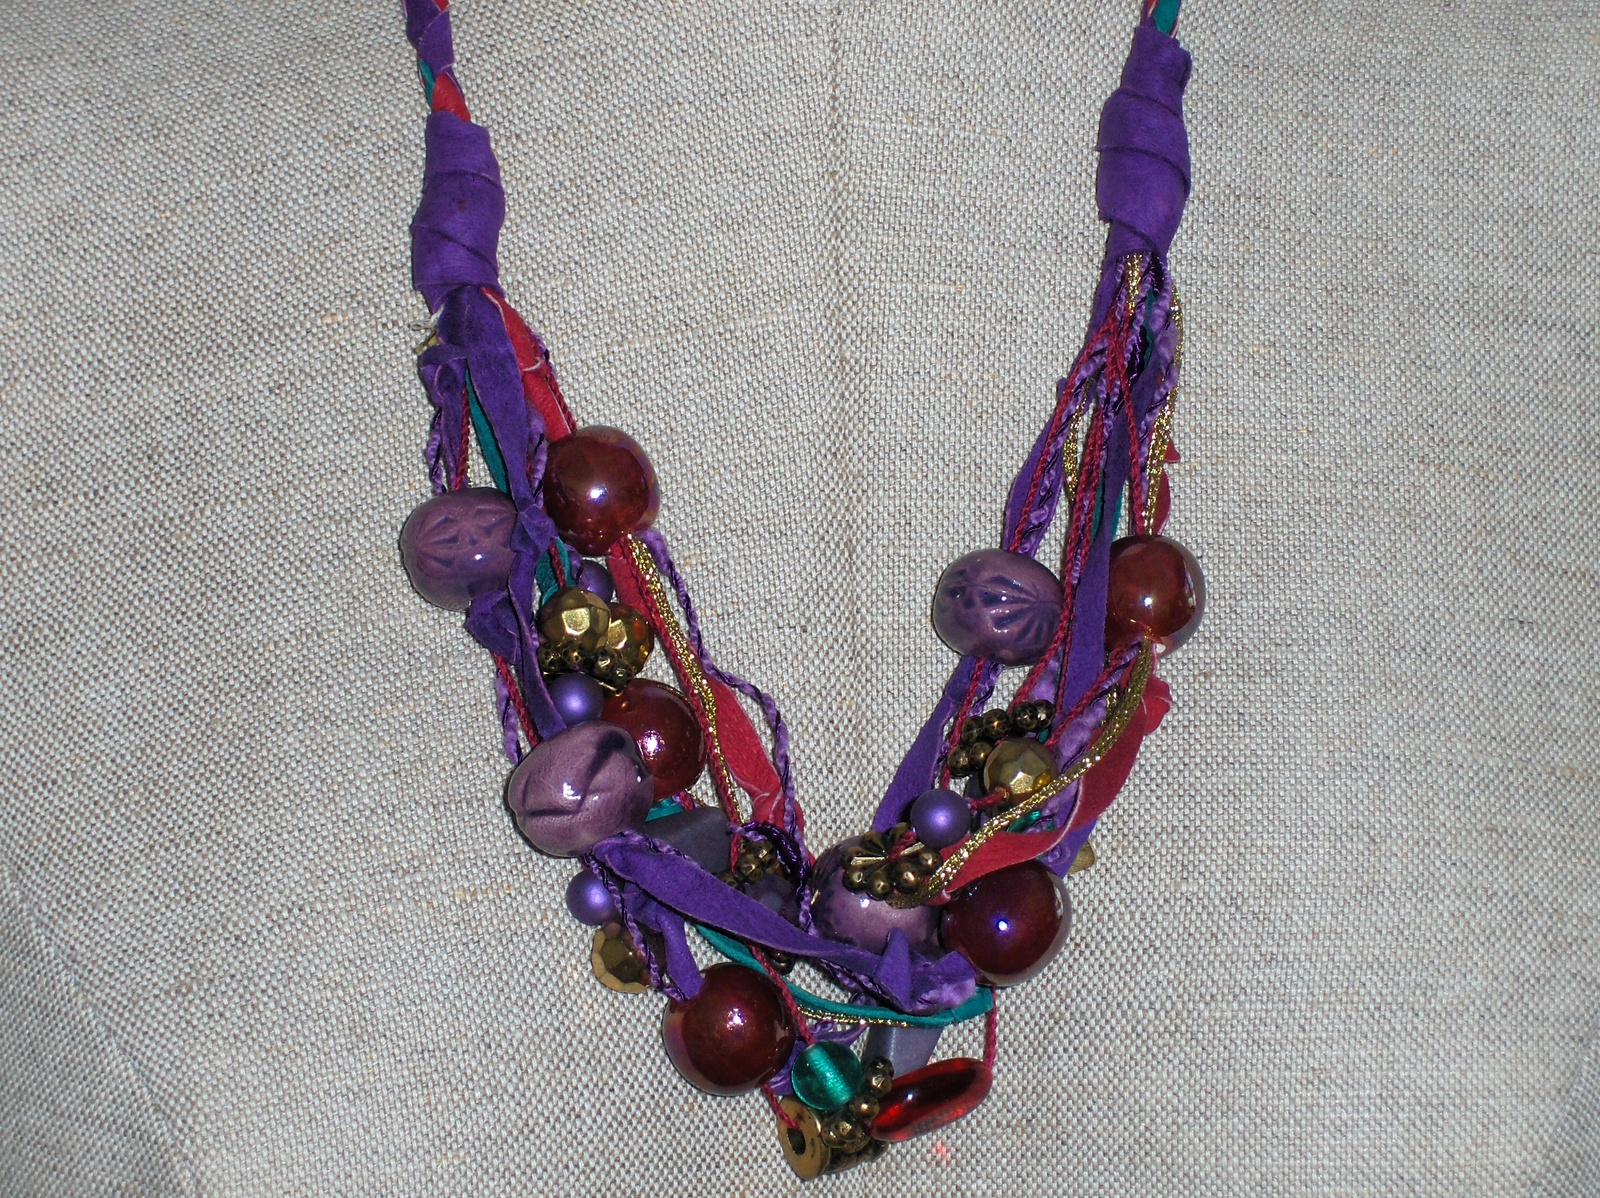 Vintage Lonnie Lovness Leather and Bead Necklace